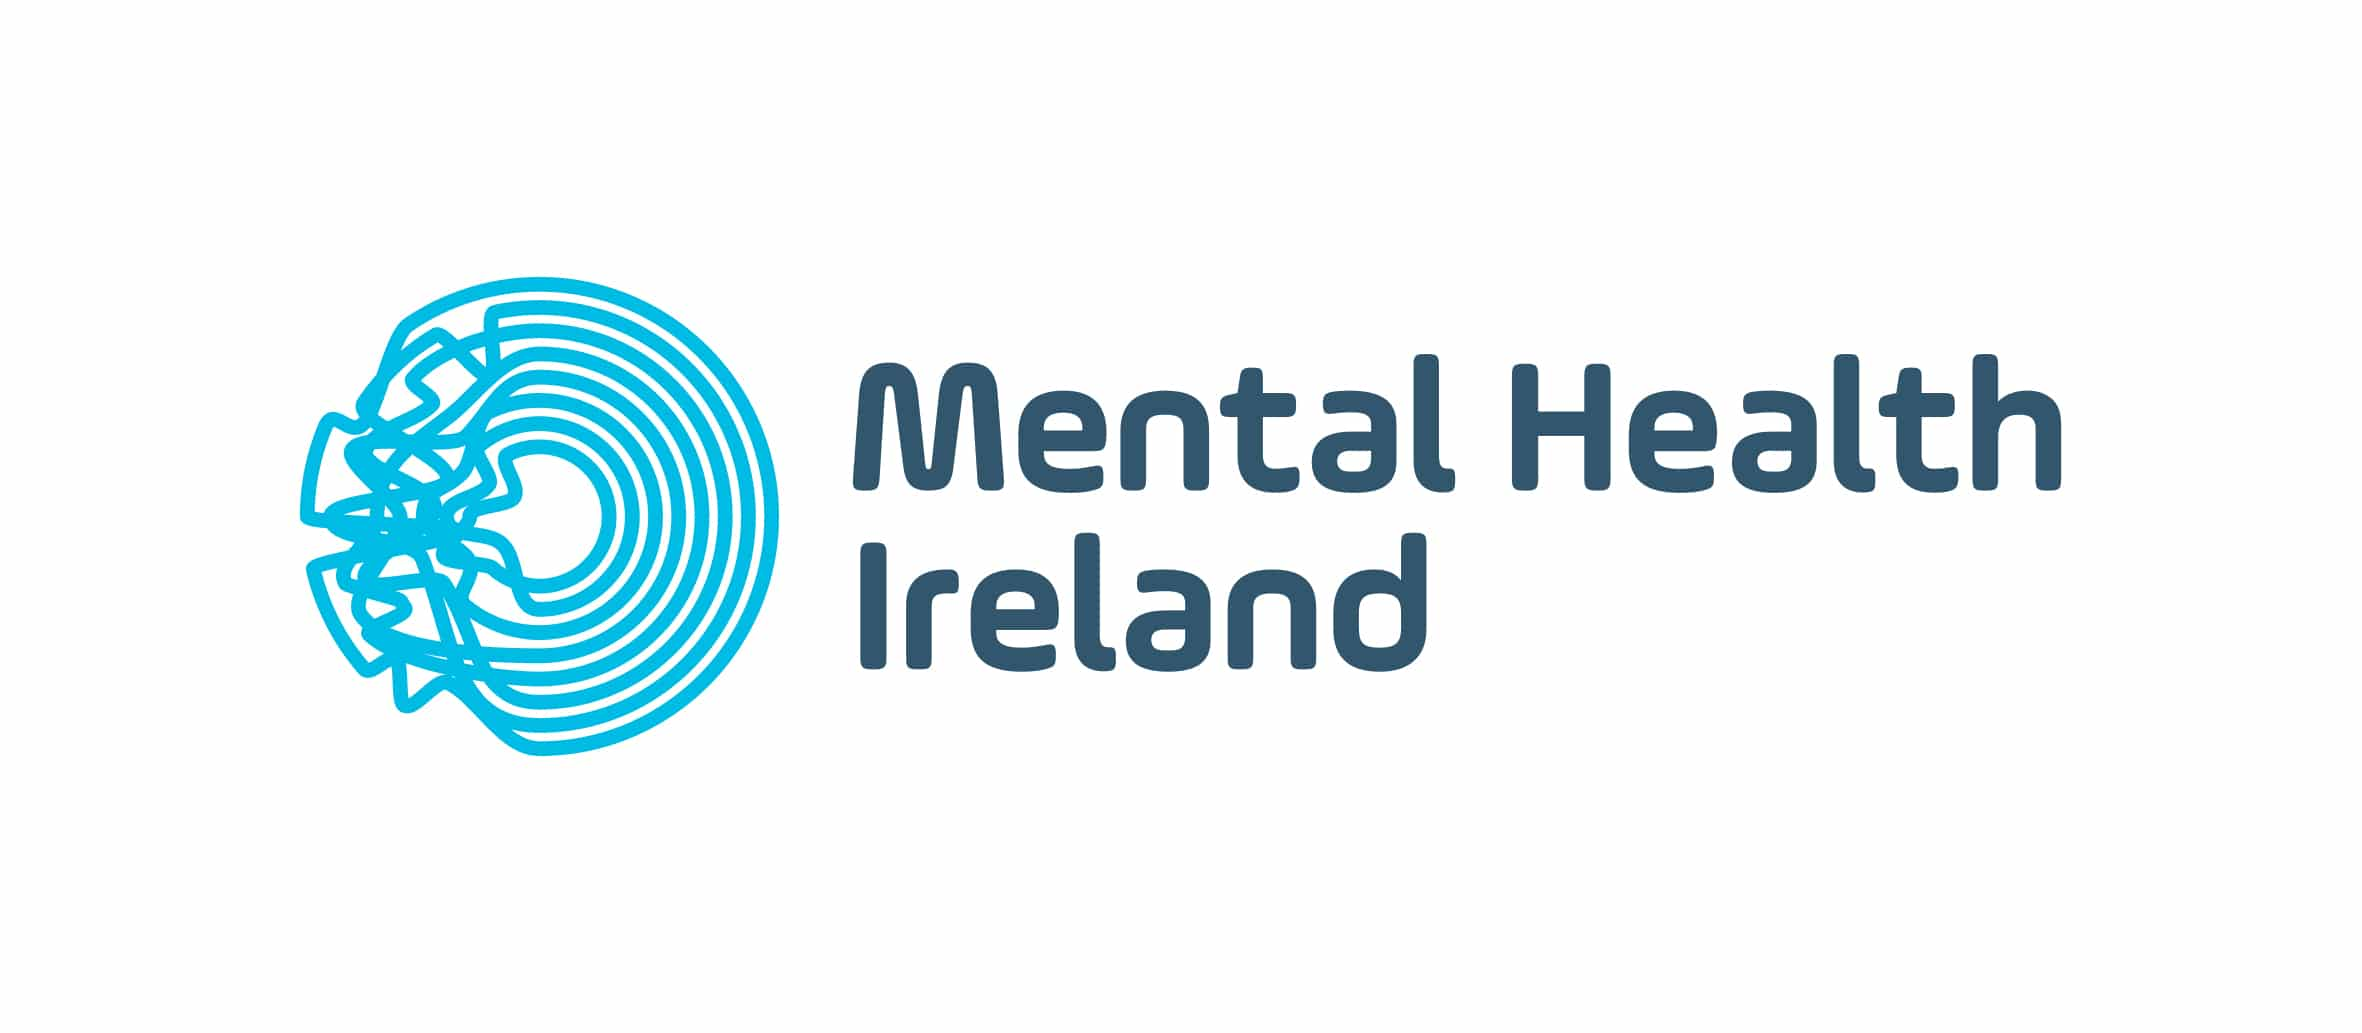 Mental Health Ireland shares Five Actions for Wellbeing during Tough Times